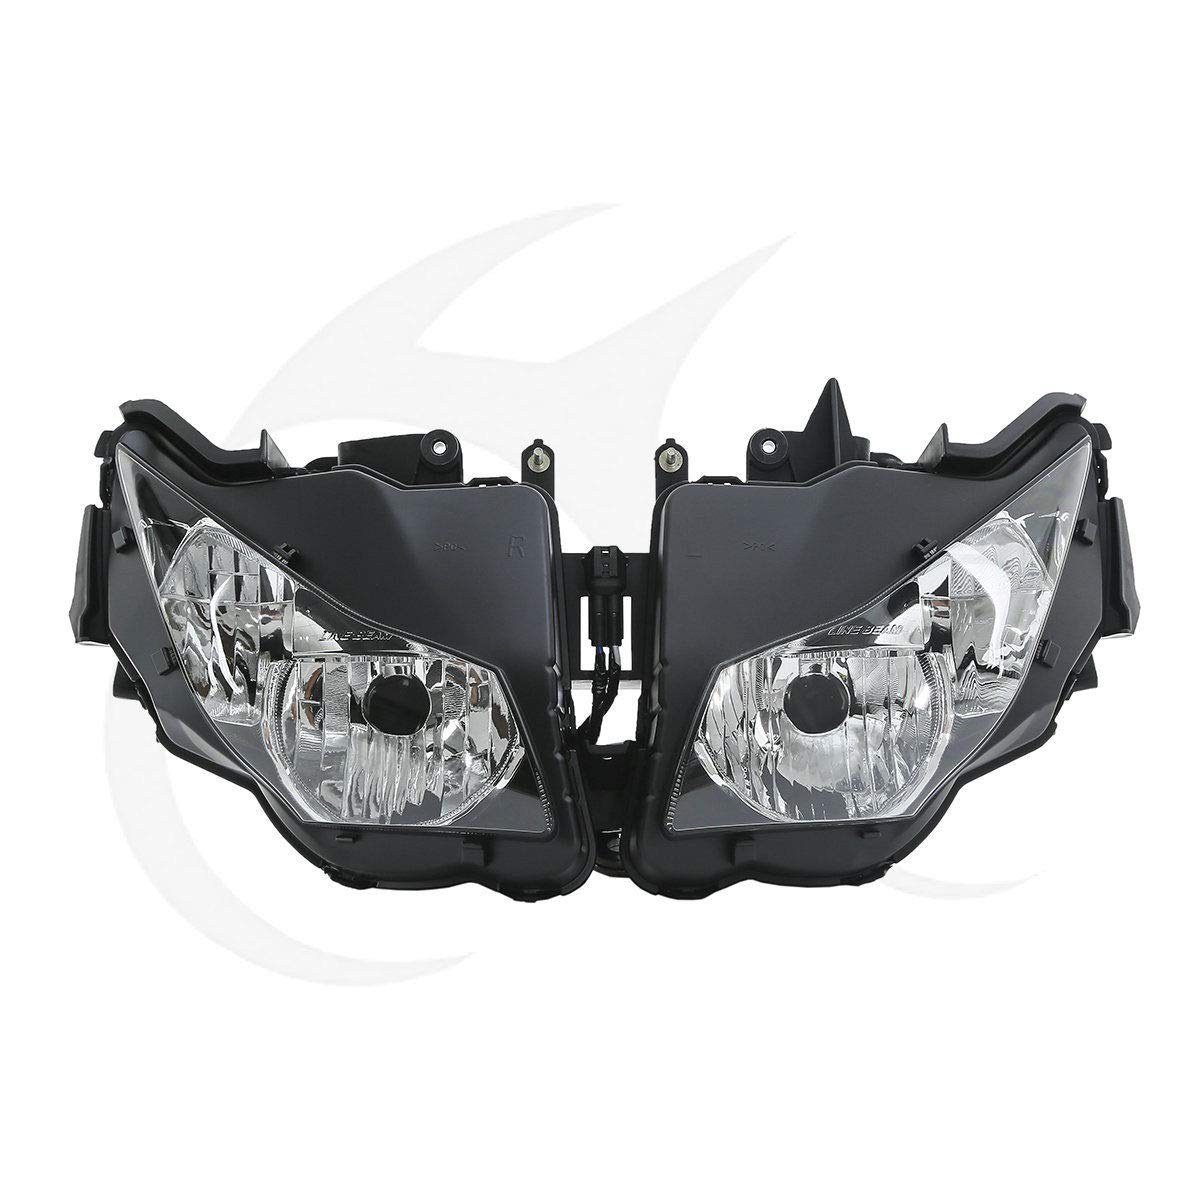 XFMT Front Headlight Light Clear Lens Assembly Compatible with Honda CBR1000RR 2012-2015 2013